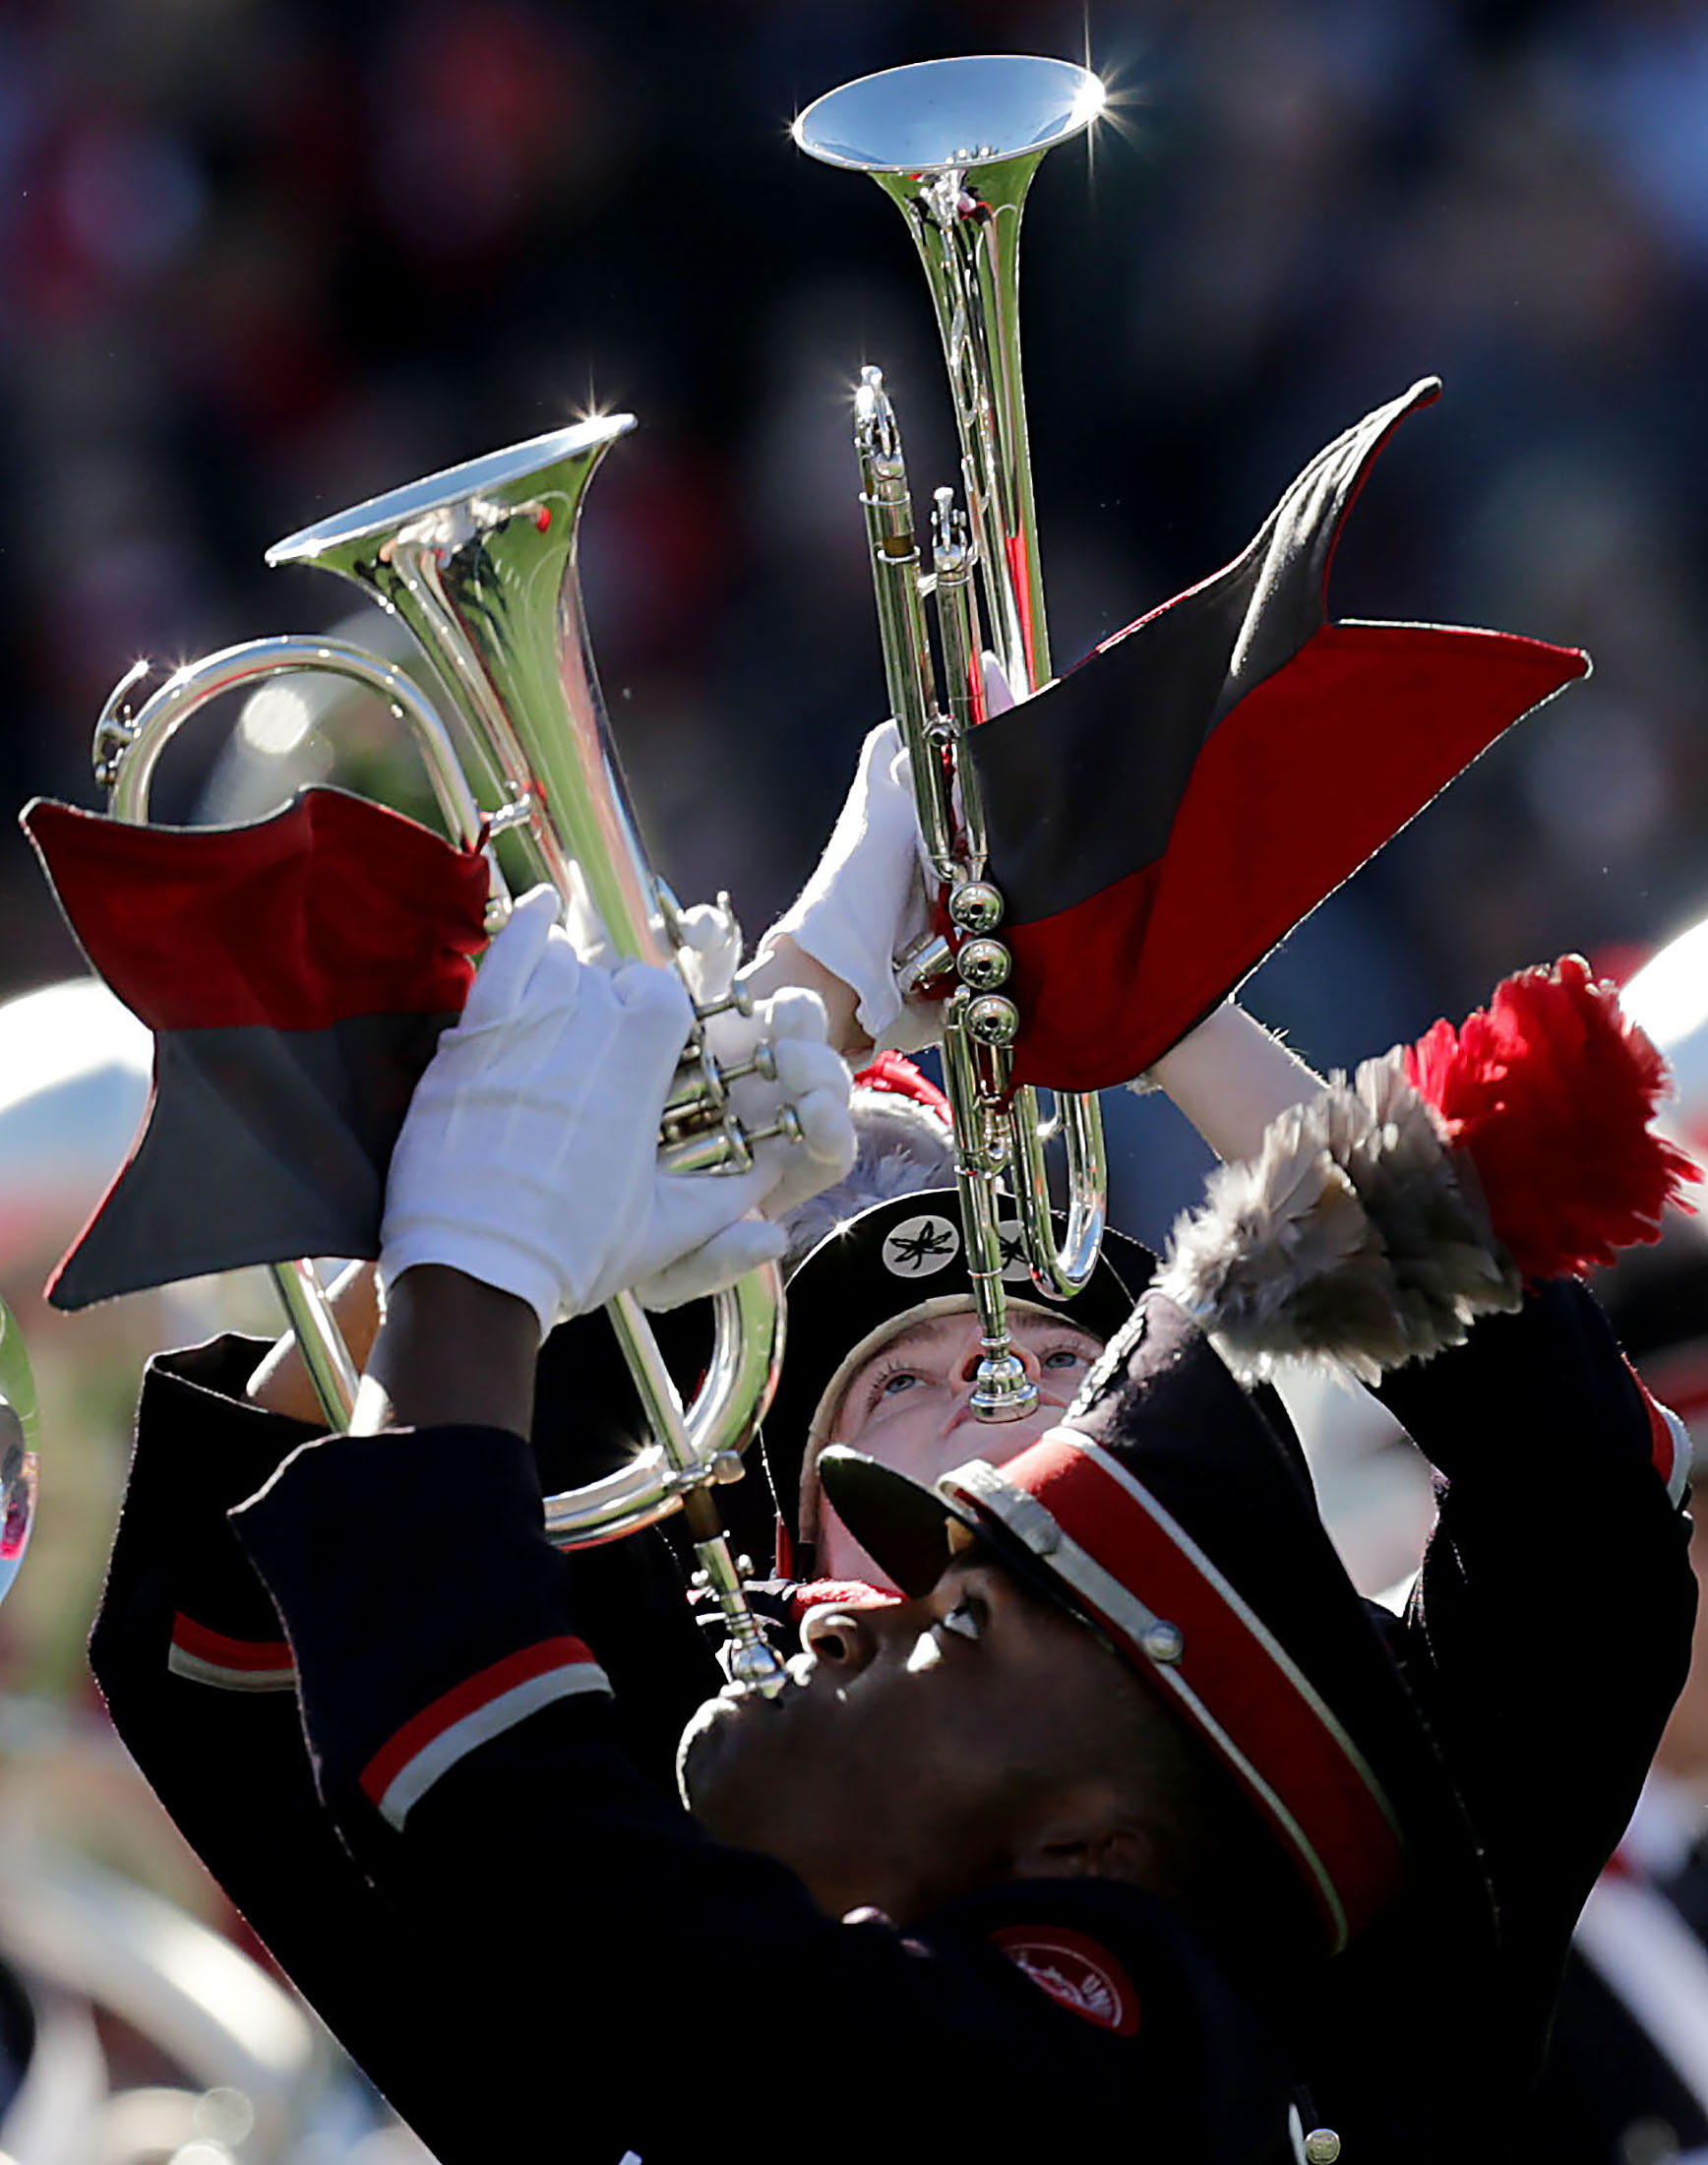 Members of the Ohio State Buckeyes marching band entertain the thousands of people attending the 105th Rose Bowl game before the start of the game in Pasadena on Tuesday, January 1, 2019.